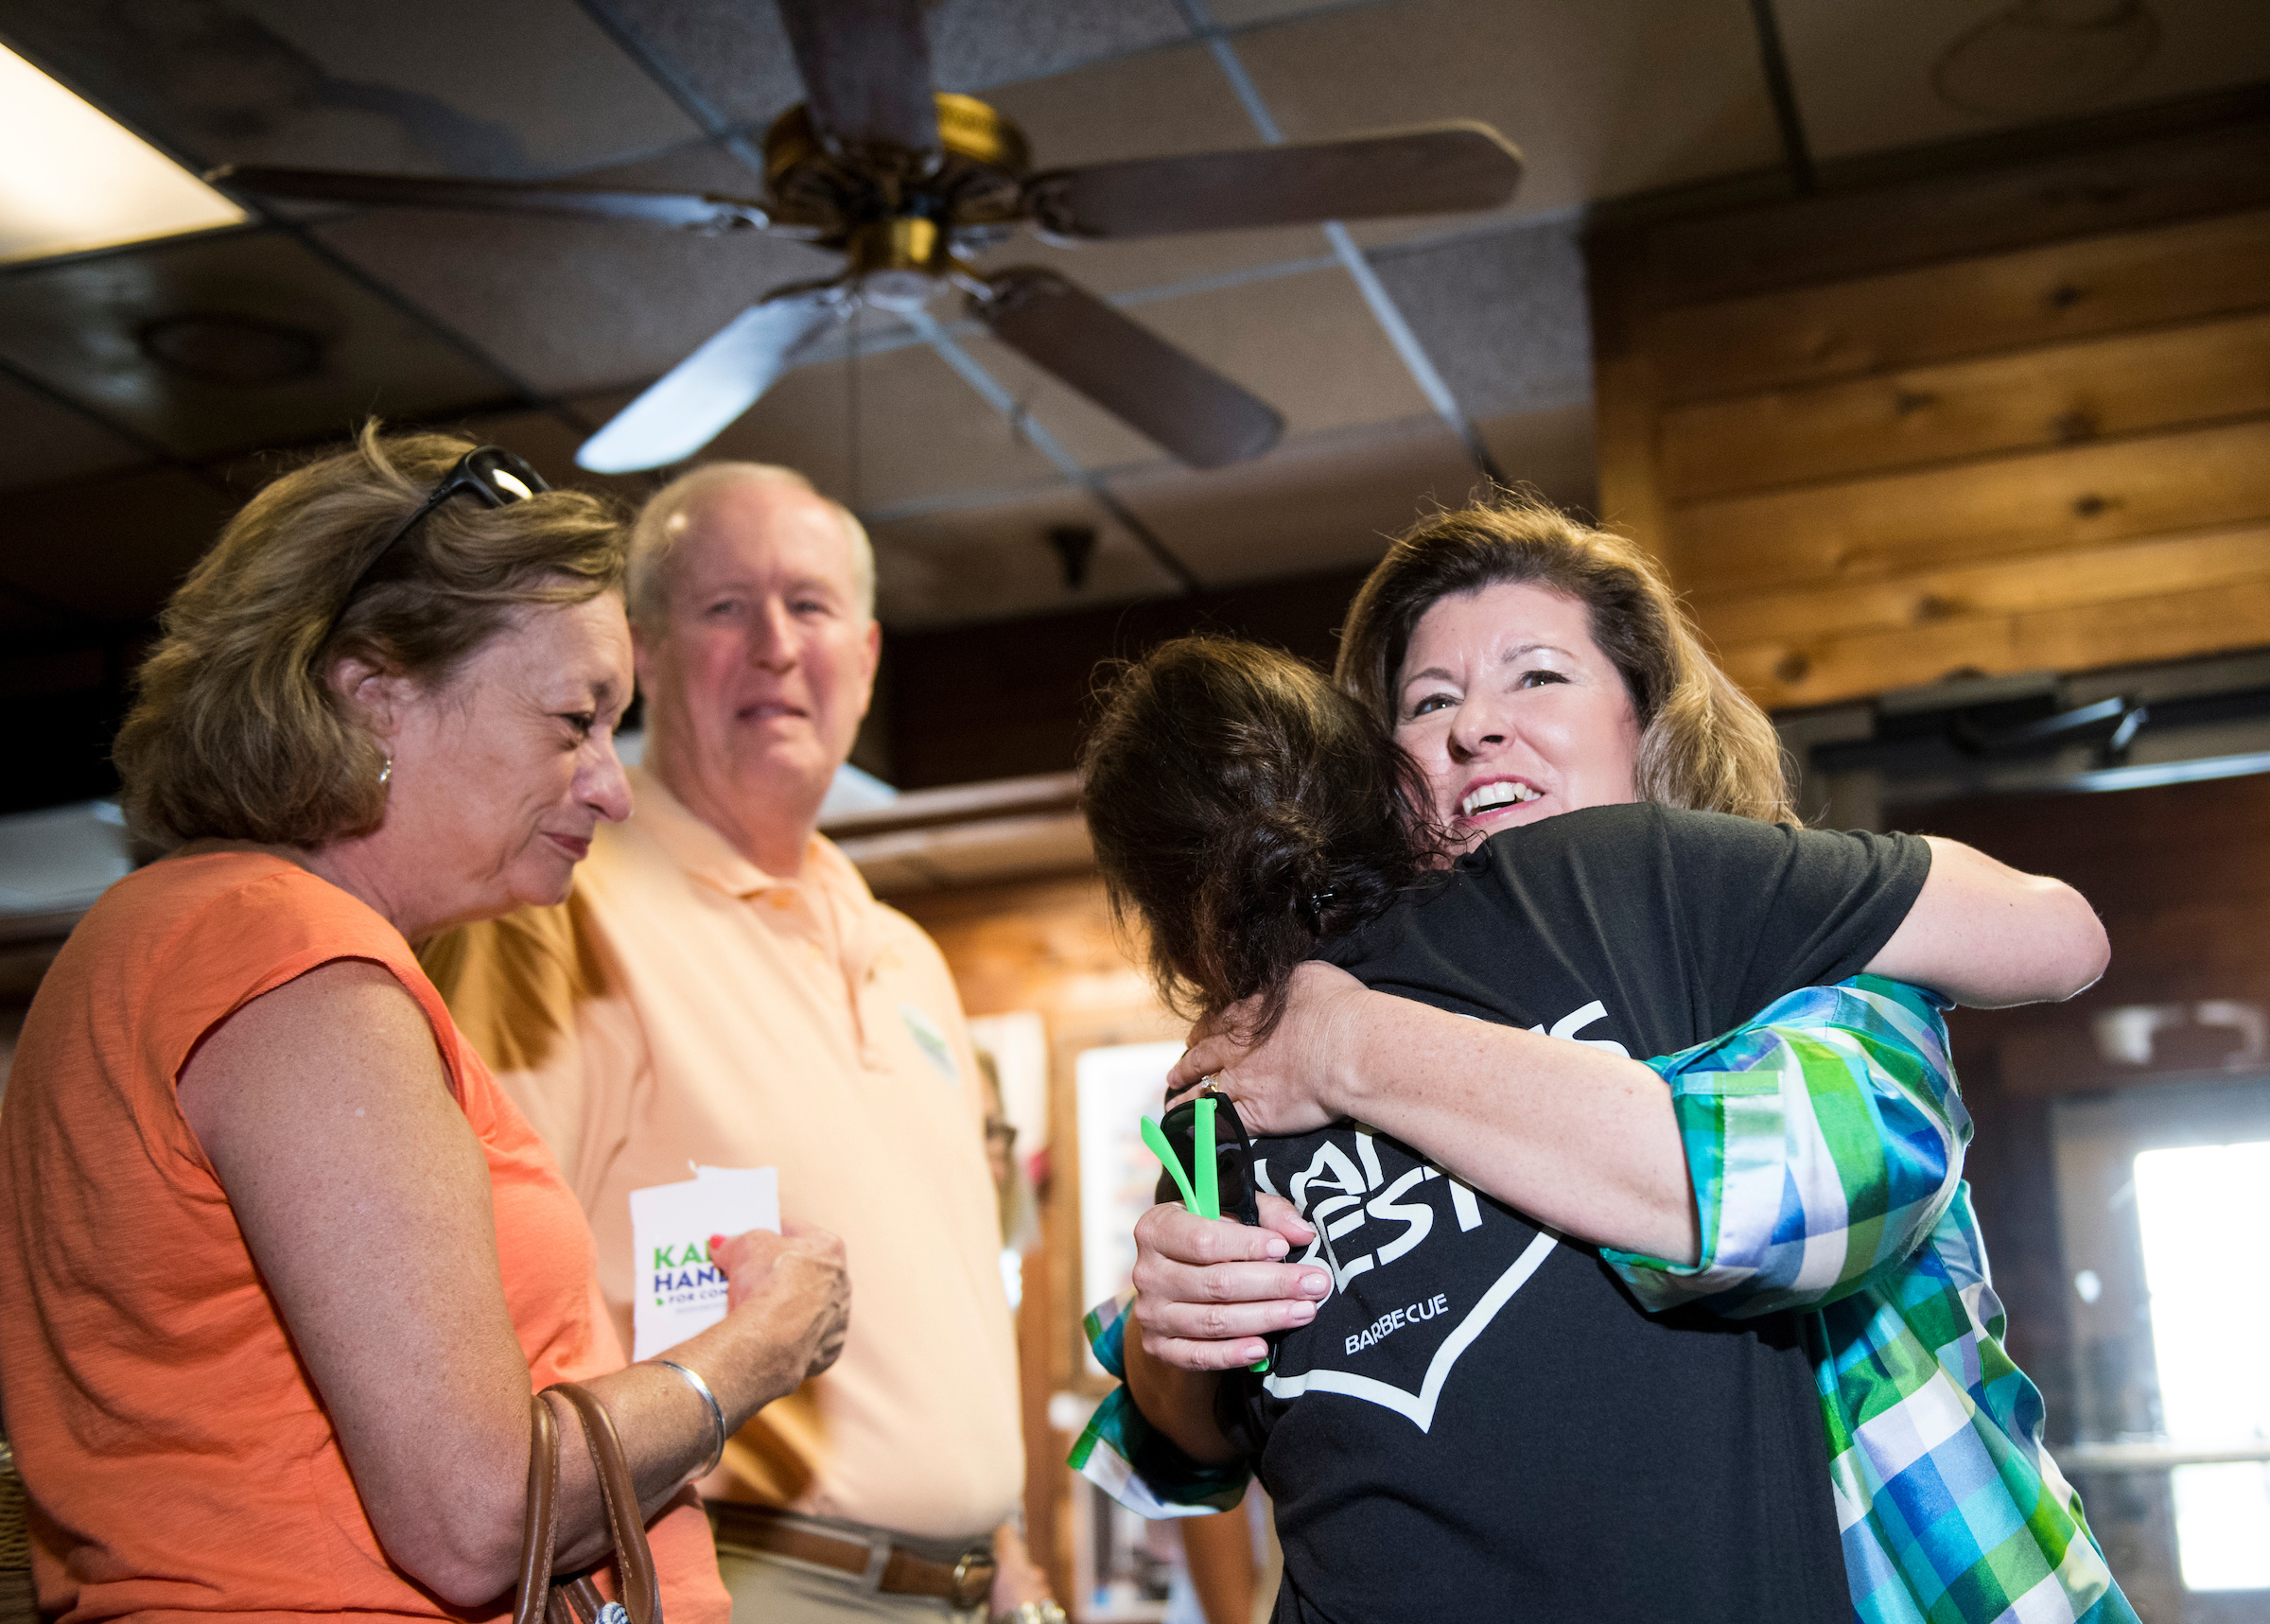 UNITED STATES - JUNE 19: Republican candidate for Georgia's 6th Congressional district Karen Handel visits with diners at the Old Hickory House in Tucker, Ga., on the final day of campaigning on Monday, June 19, 2017. Handel is facing off against Democrat Jon Ossoff in the special election to fill the seat vacated by current HHS Secretary Tom Price will be held on Tuesday. (Photo By Bill Clark/CQ Roll Call)